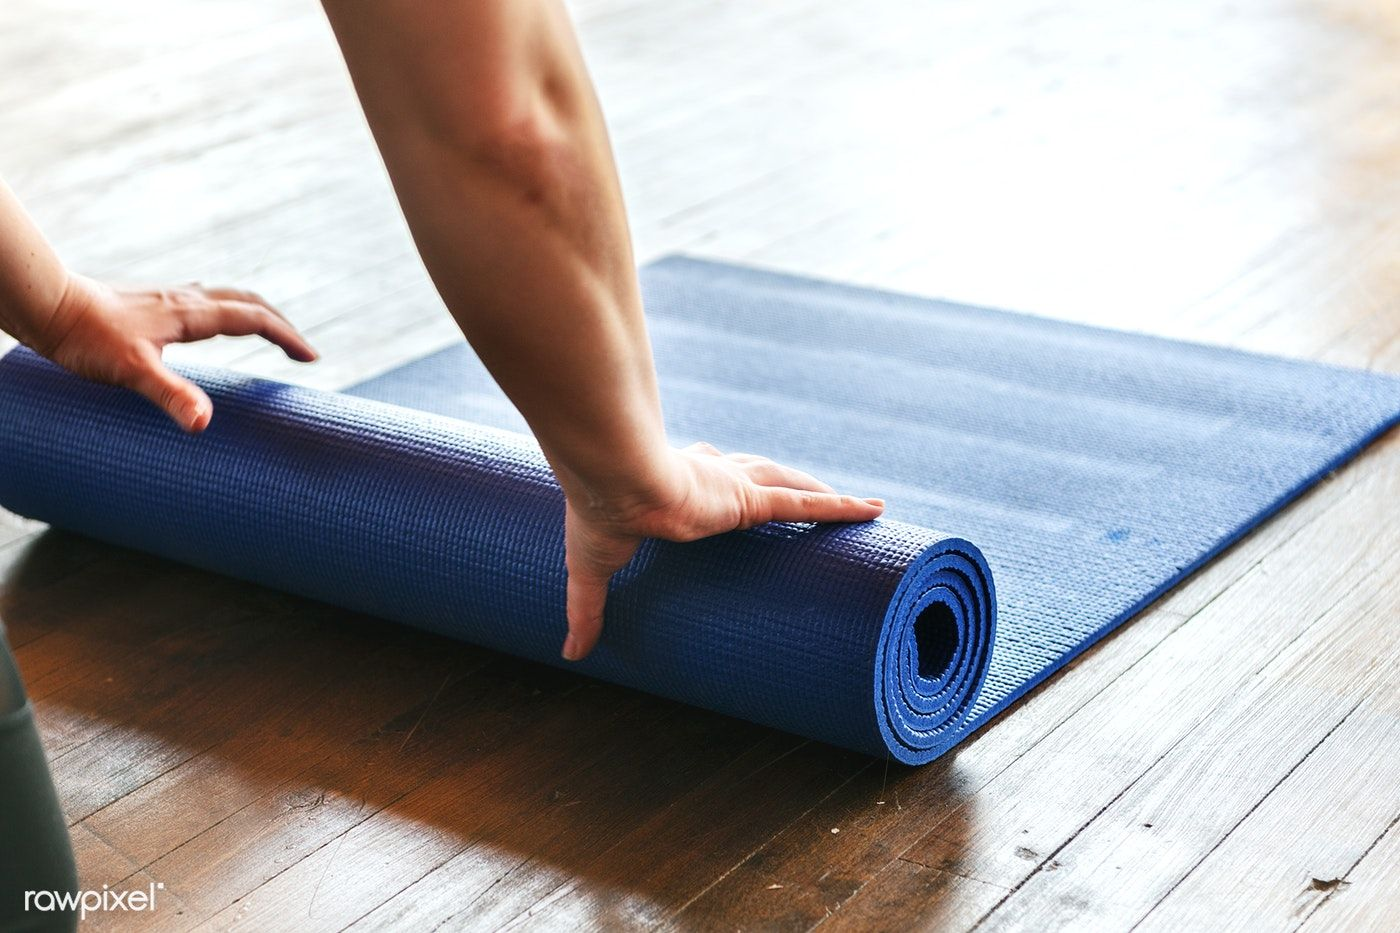 Rolling Up A Yoga Mat After Class Free Image By Rawpixel Com Teddy Rawpixel Yoga Images Free Yoga Classes Yoga